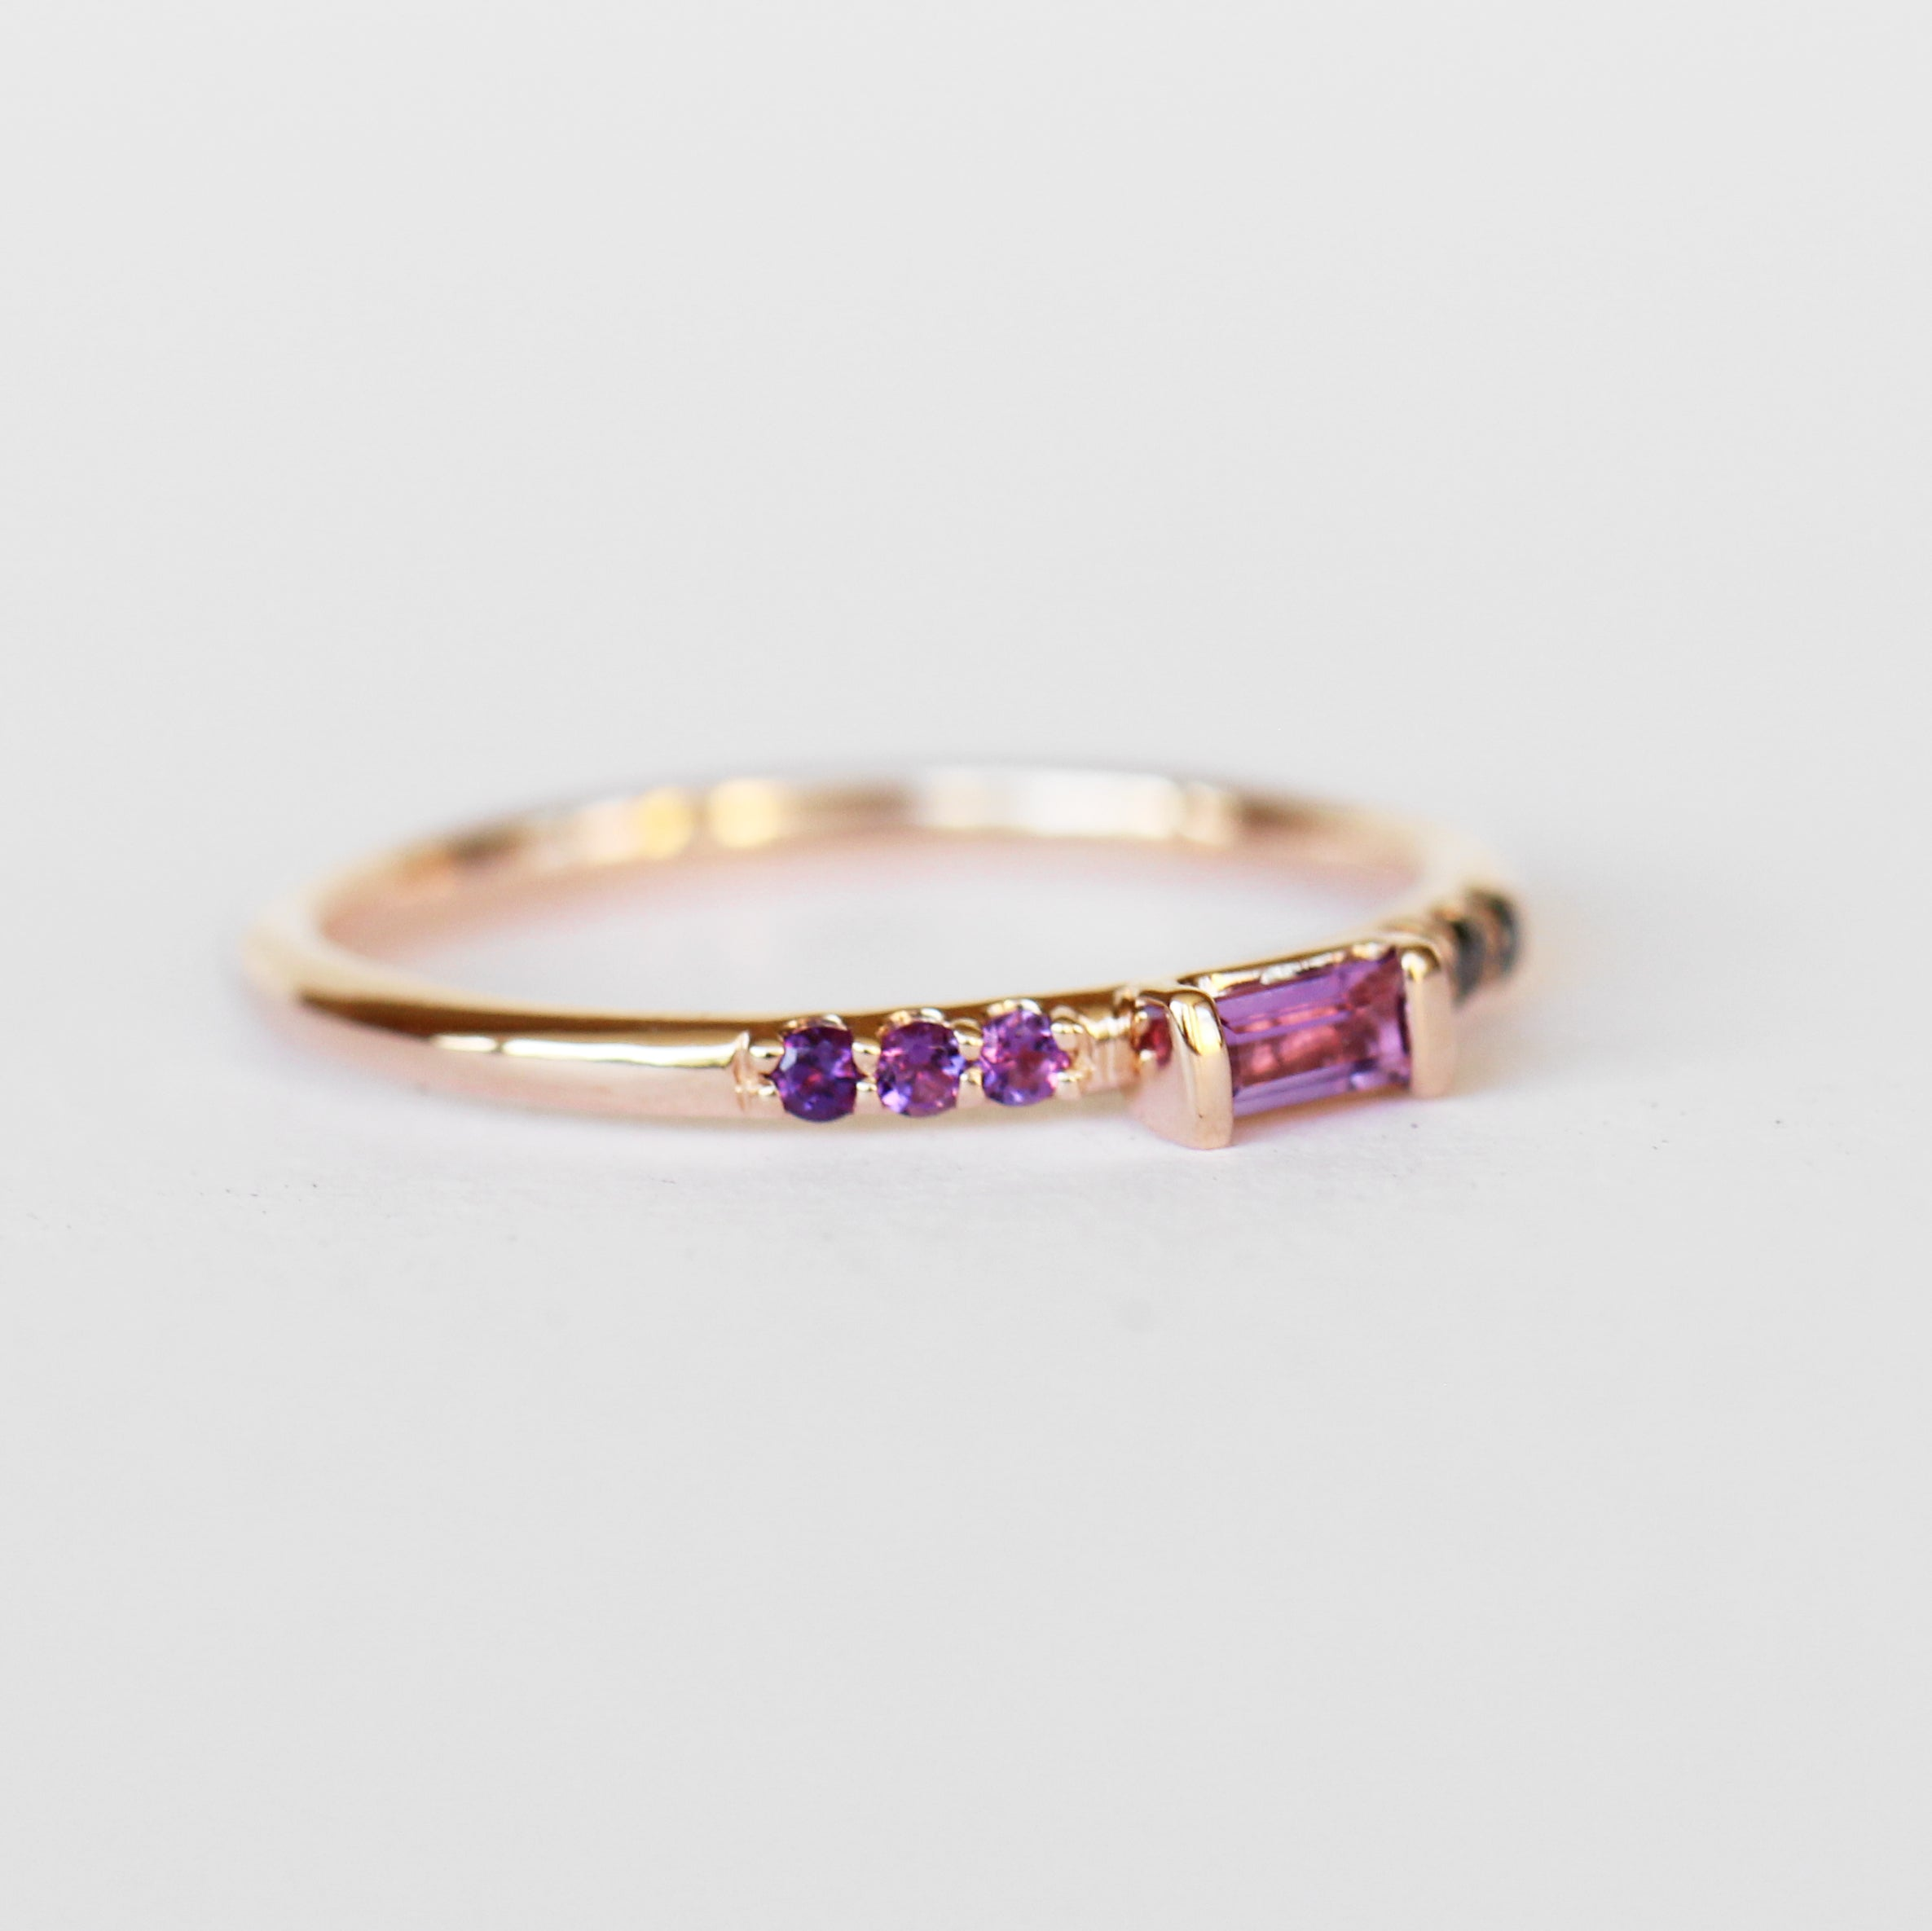 Summer Stacking Ring with Amethyst and Black Diamonds in 10k Rose Gold - Ready to Size and Ship - Celestial Diamonds ® by Midwinter Co.